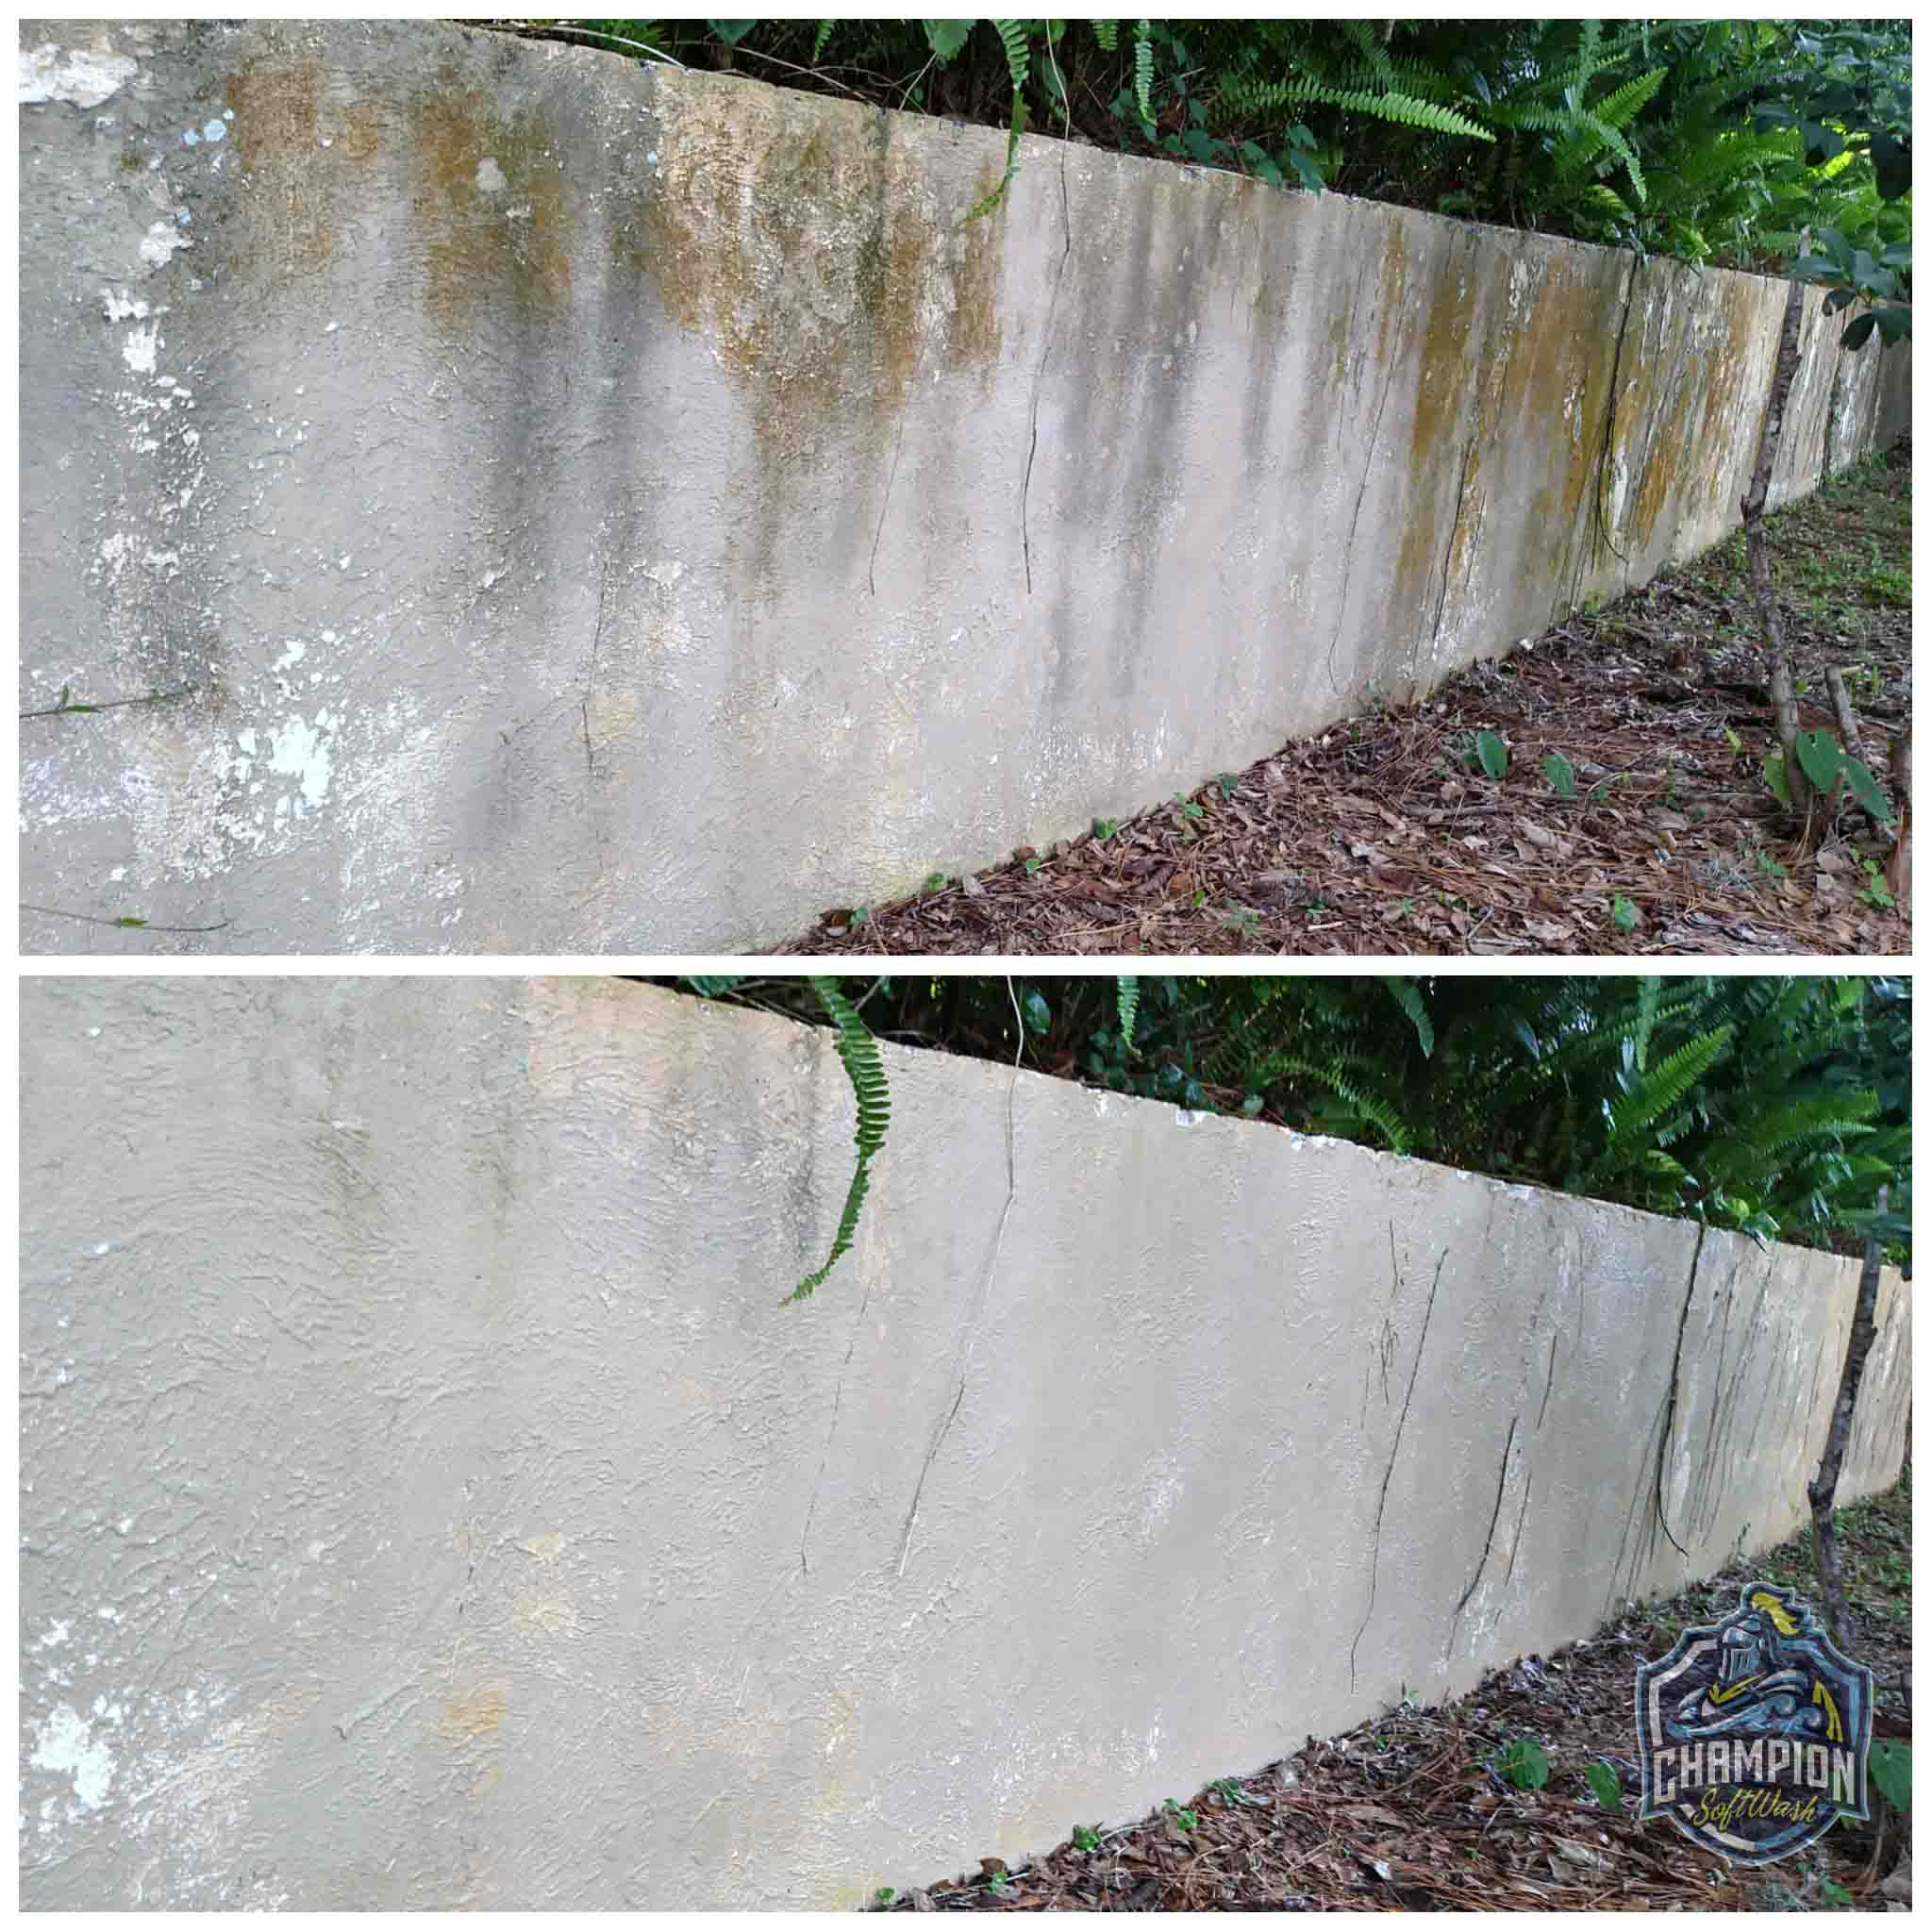 Before and After of SoftWashing of stucco wall in Florida, Safe alternative to pressure washing, no harsh pressure